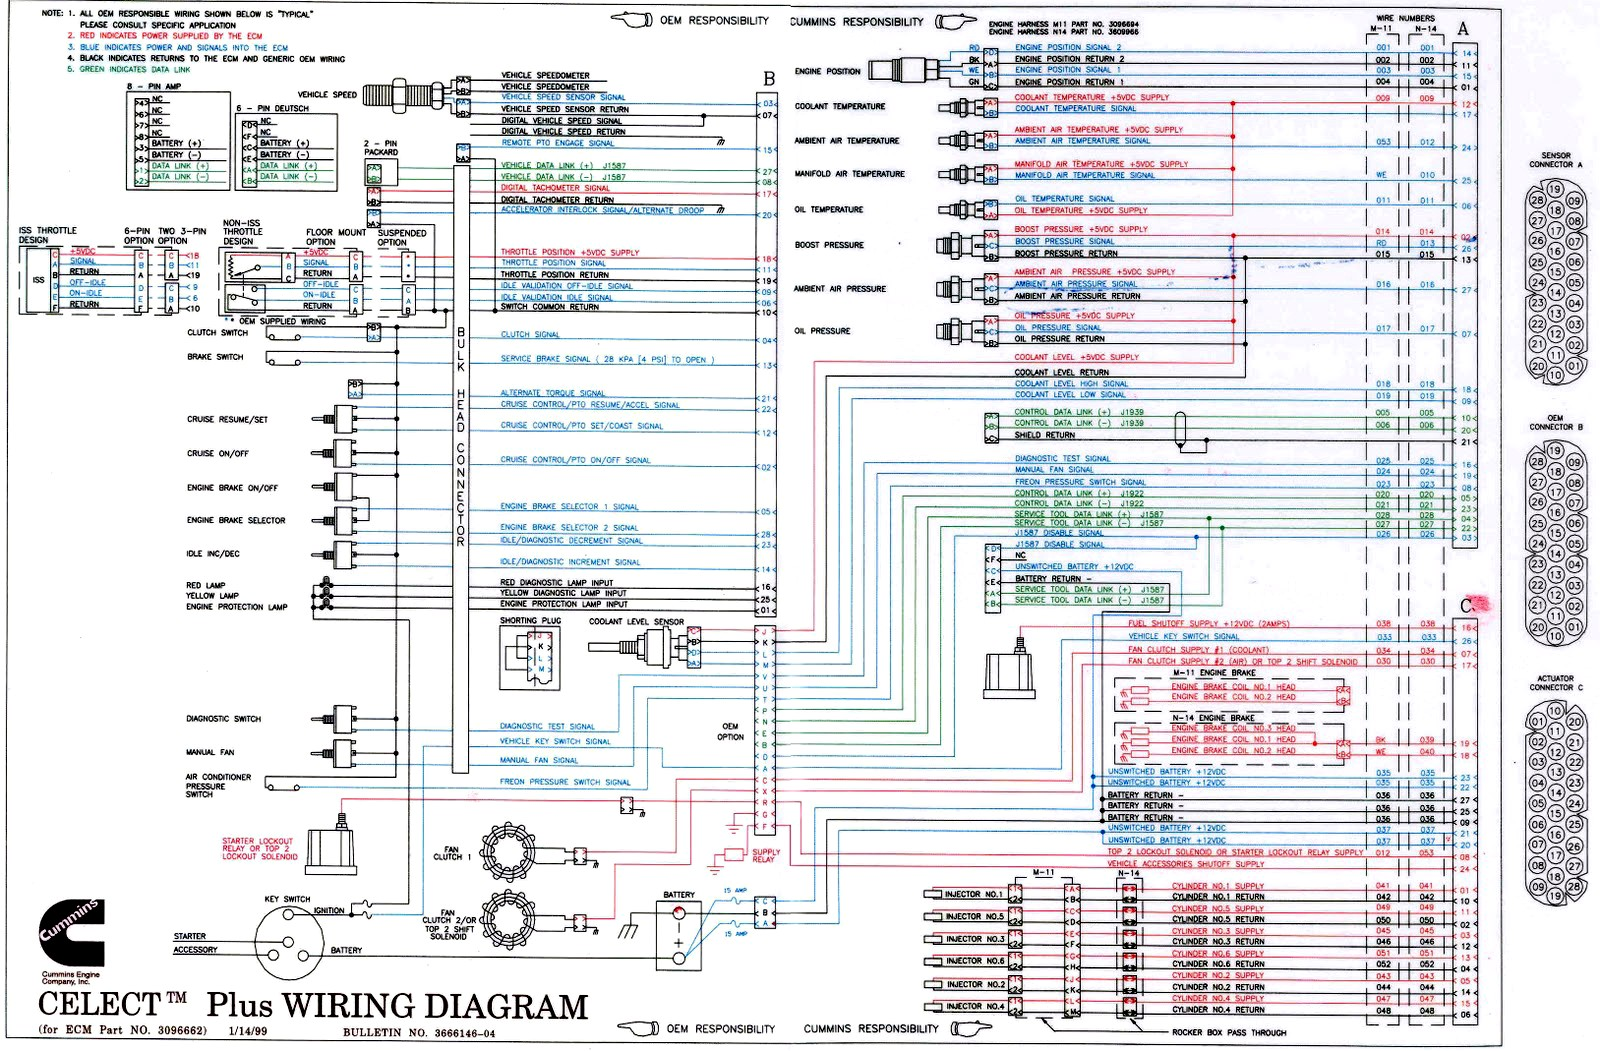 Celect+Plus+Wiring+Diagram+Cummins wiring diagram 1991 kenworth t600 readingrat net kenworth t600 wiring diagrams at crackthecode.co